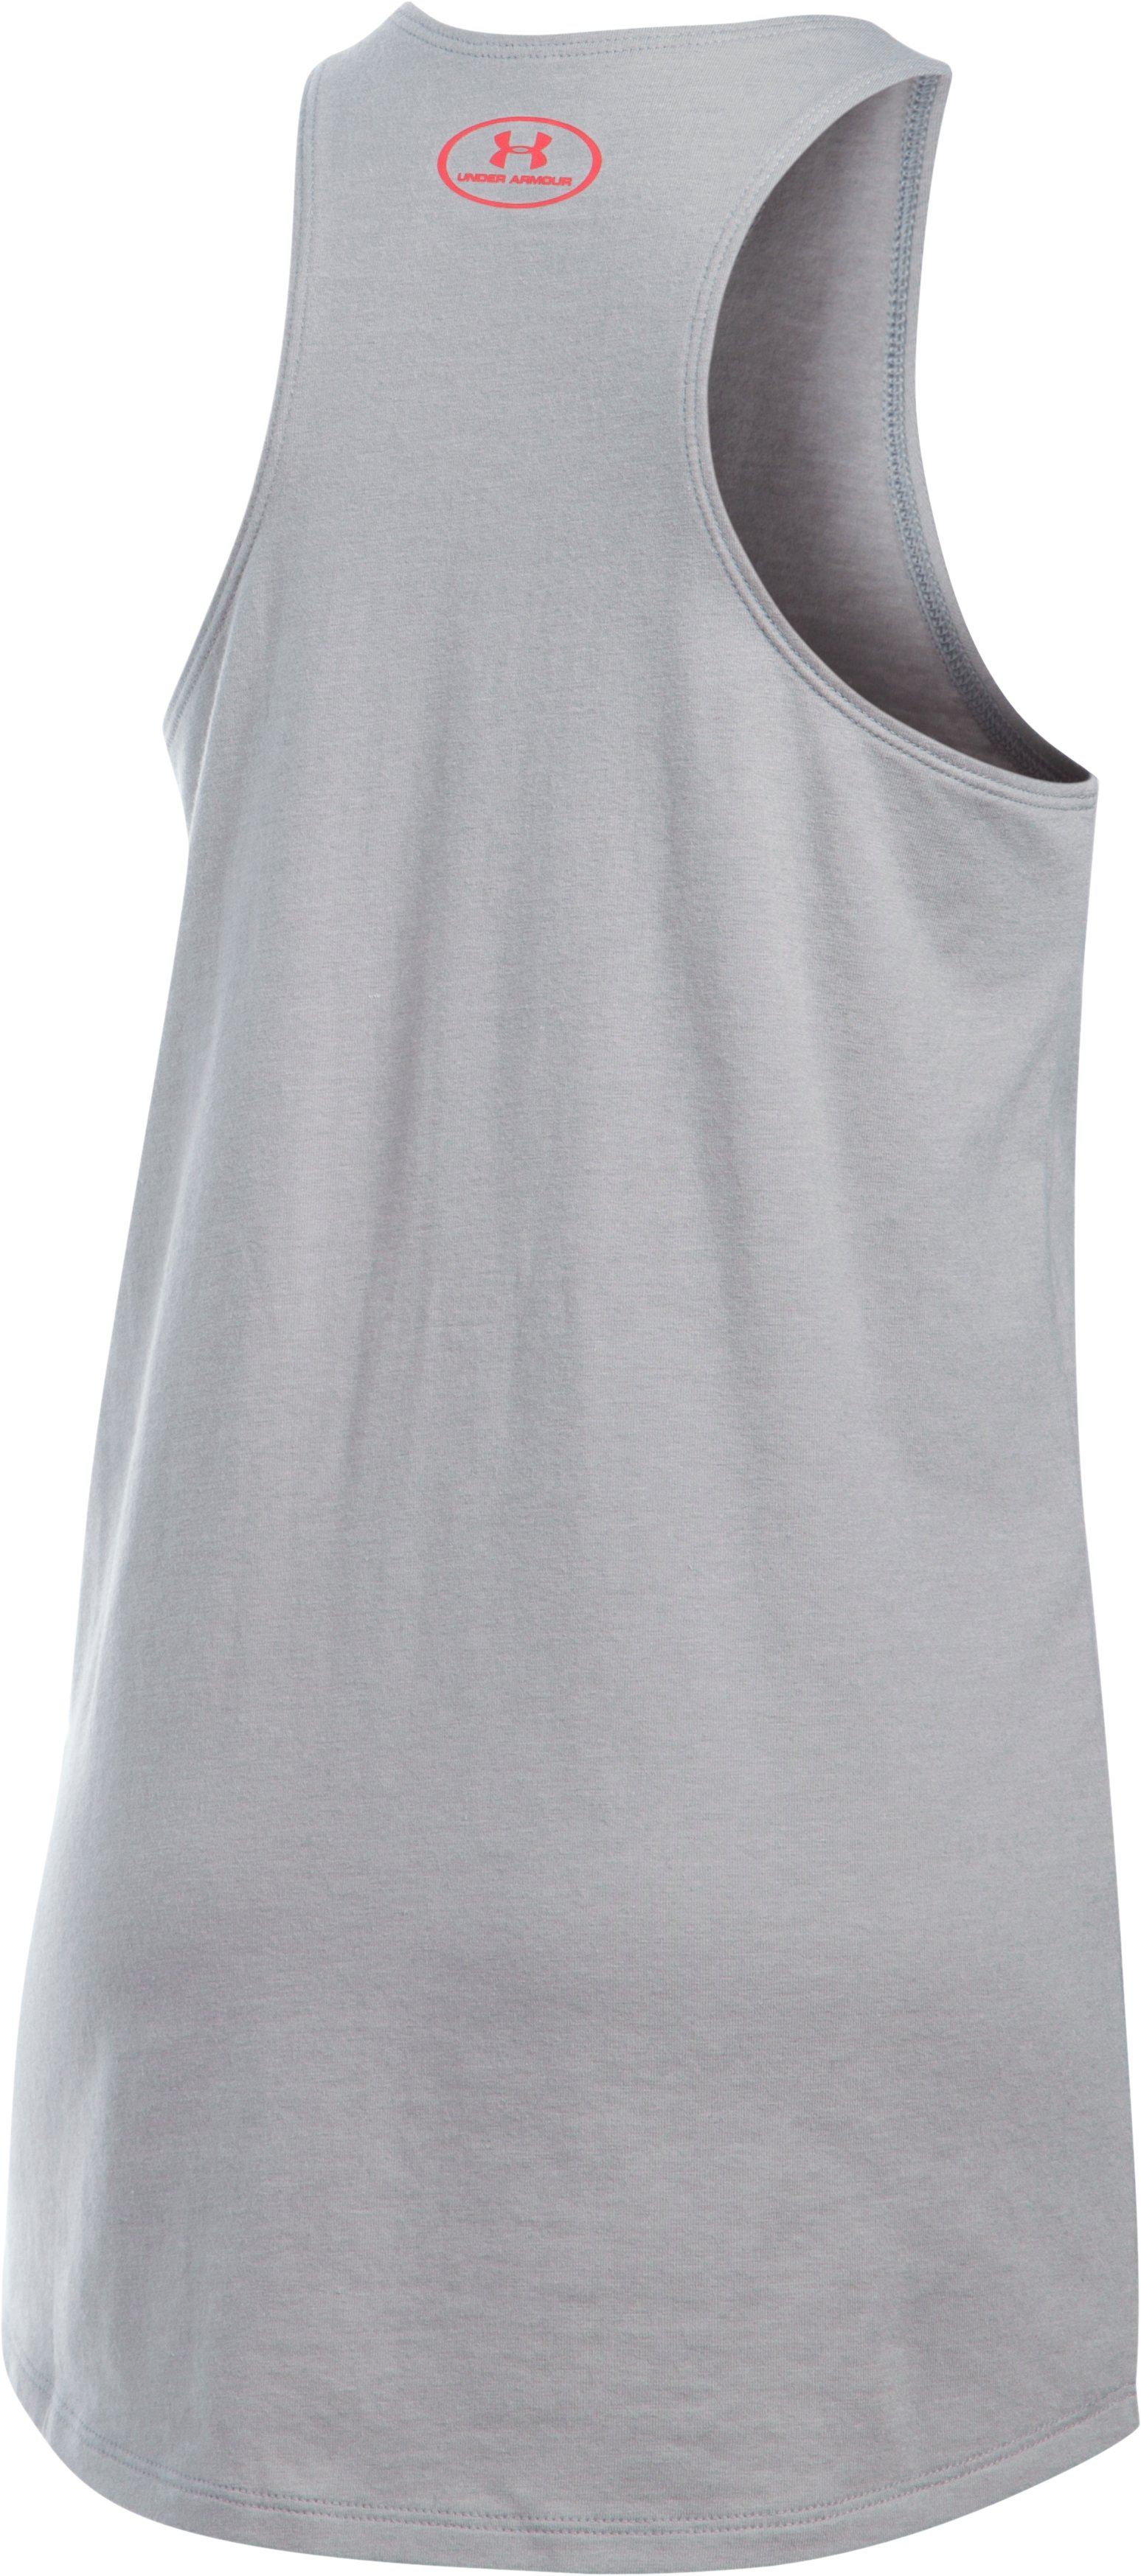 Girls' USA Gymnastics Tank, True Gray Heather